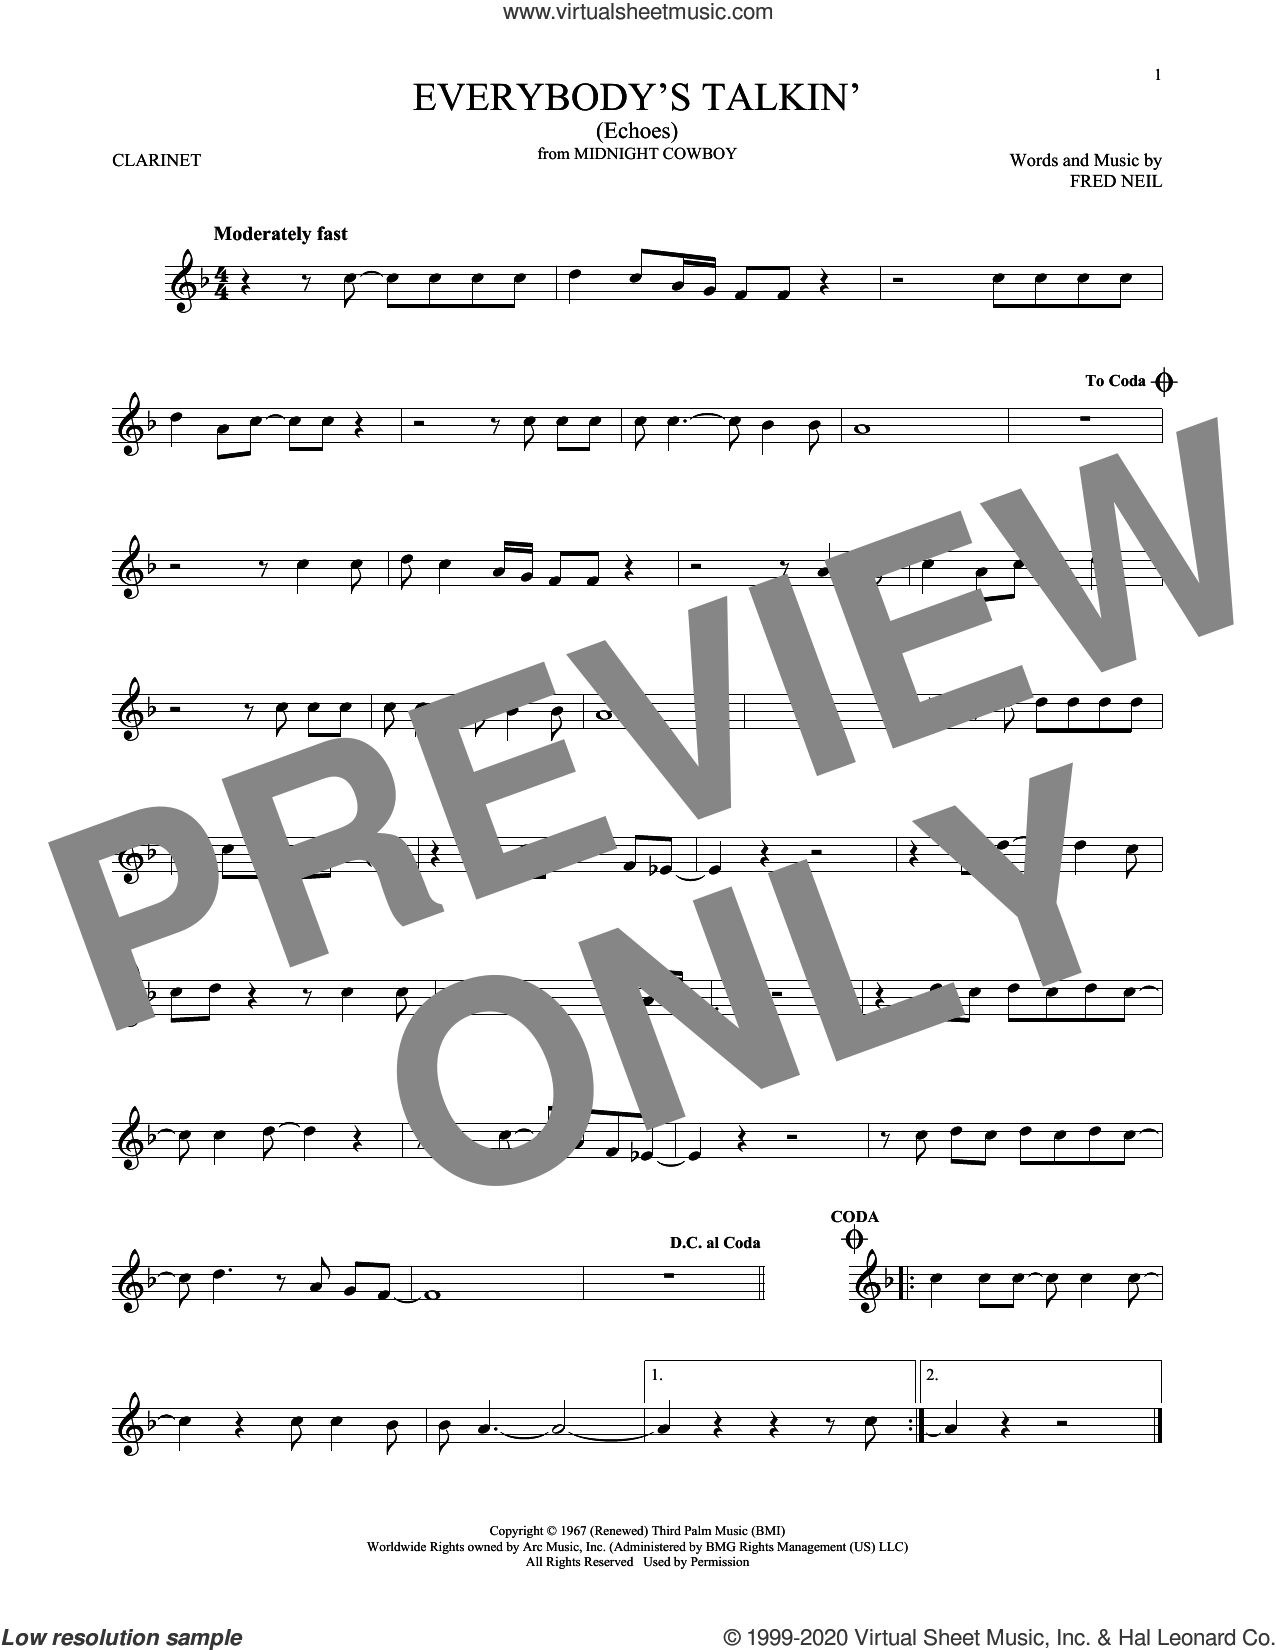 Everybody's Talkin' (Echoes) sheet music for clarinet solo by Harry Nilsson and Fred Neil, intermediate skill level